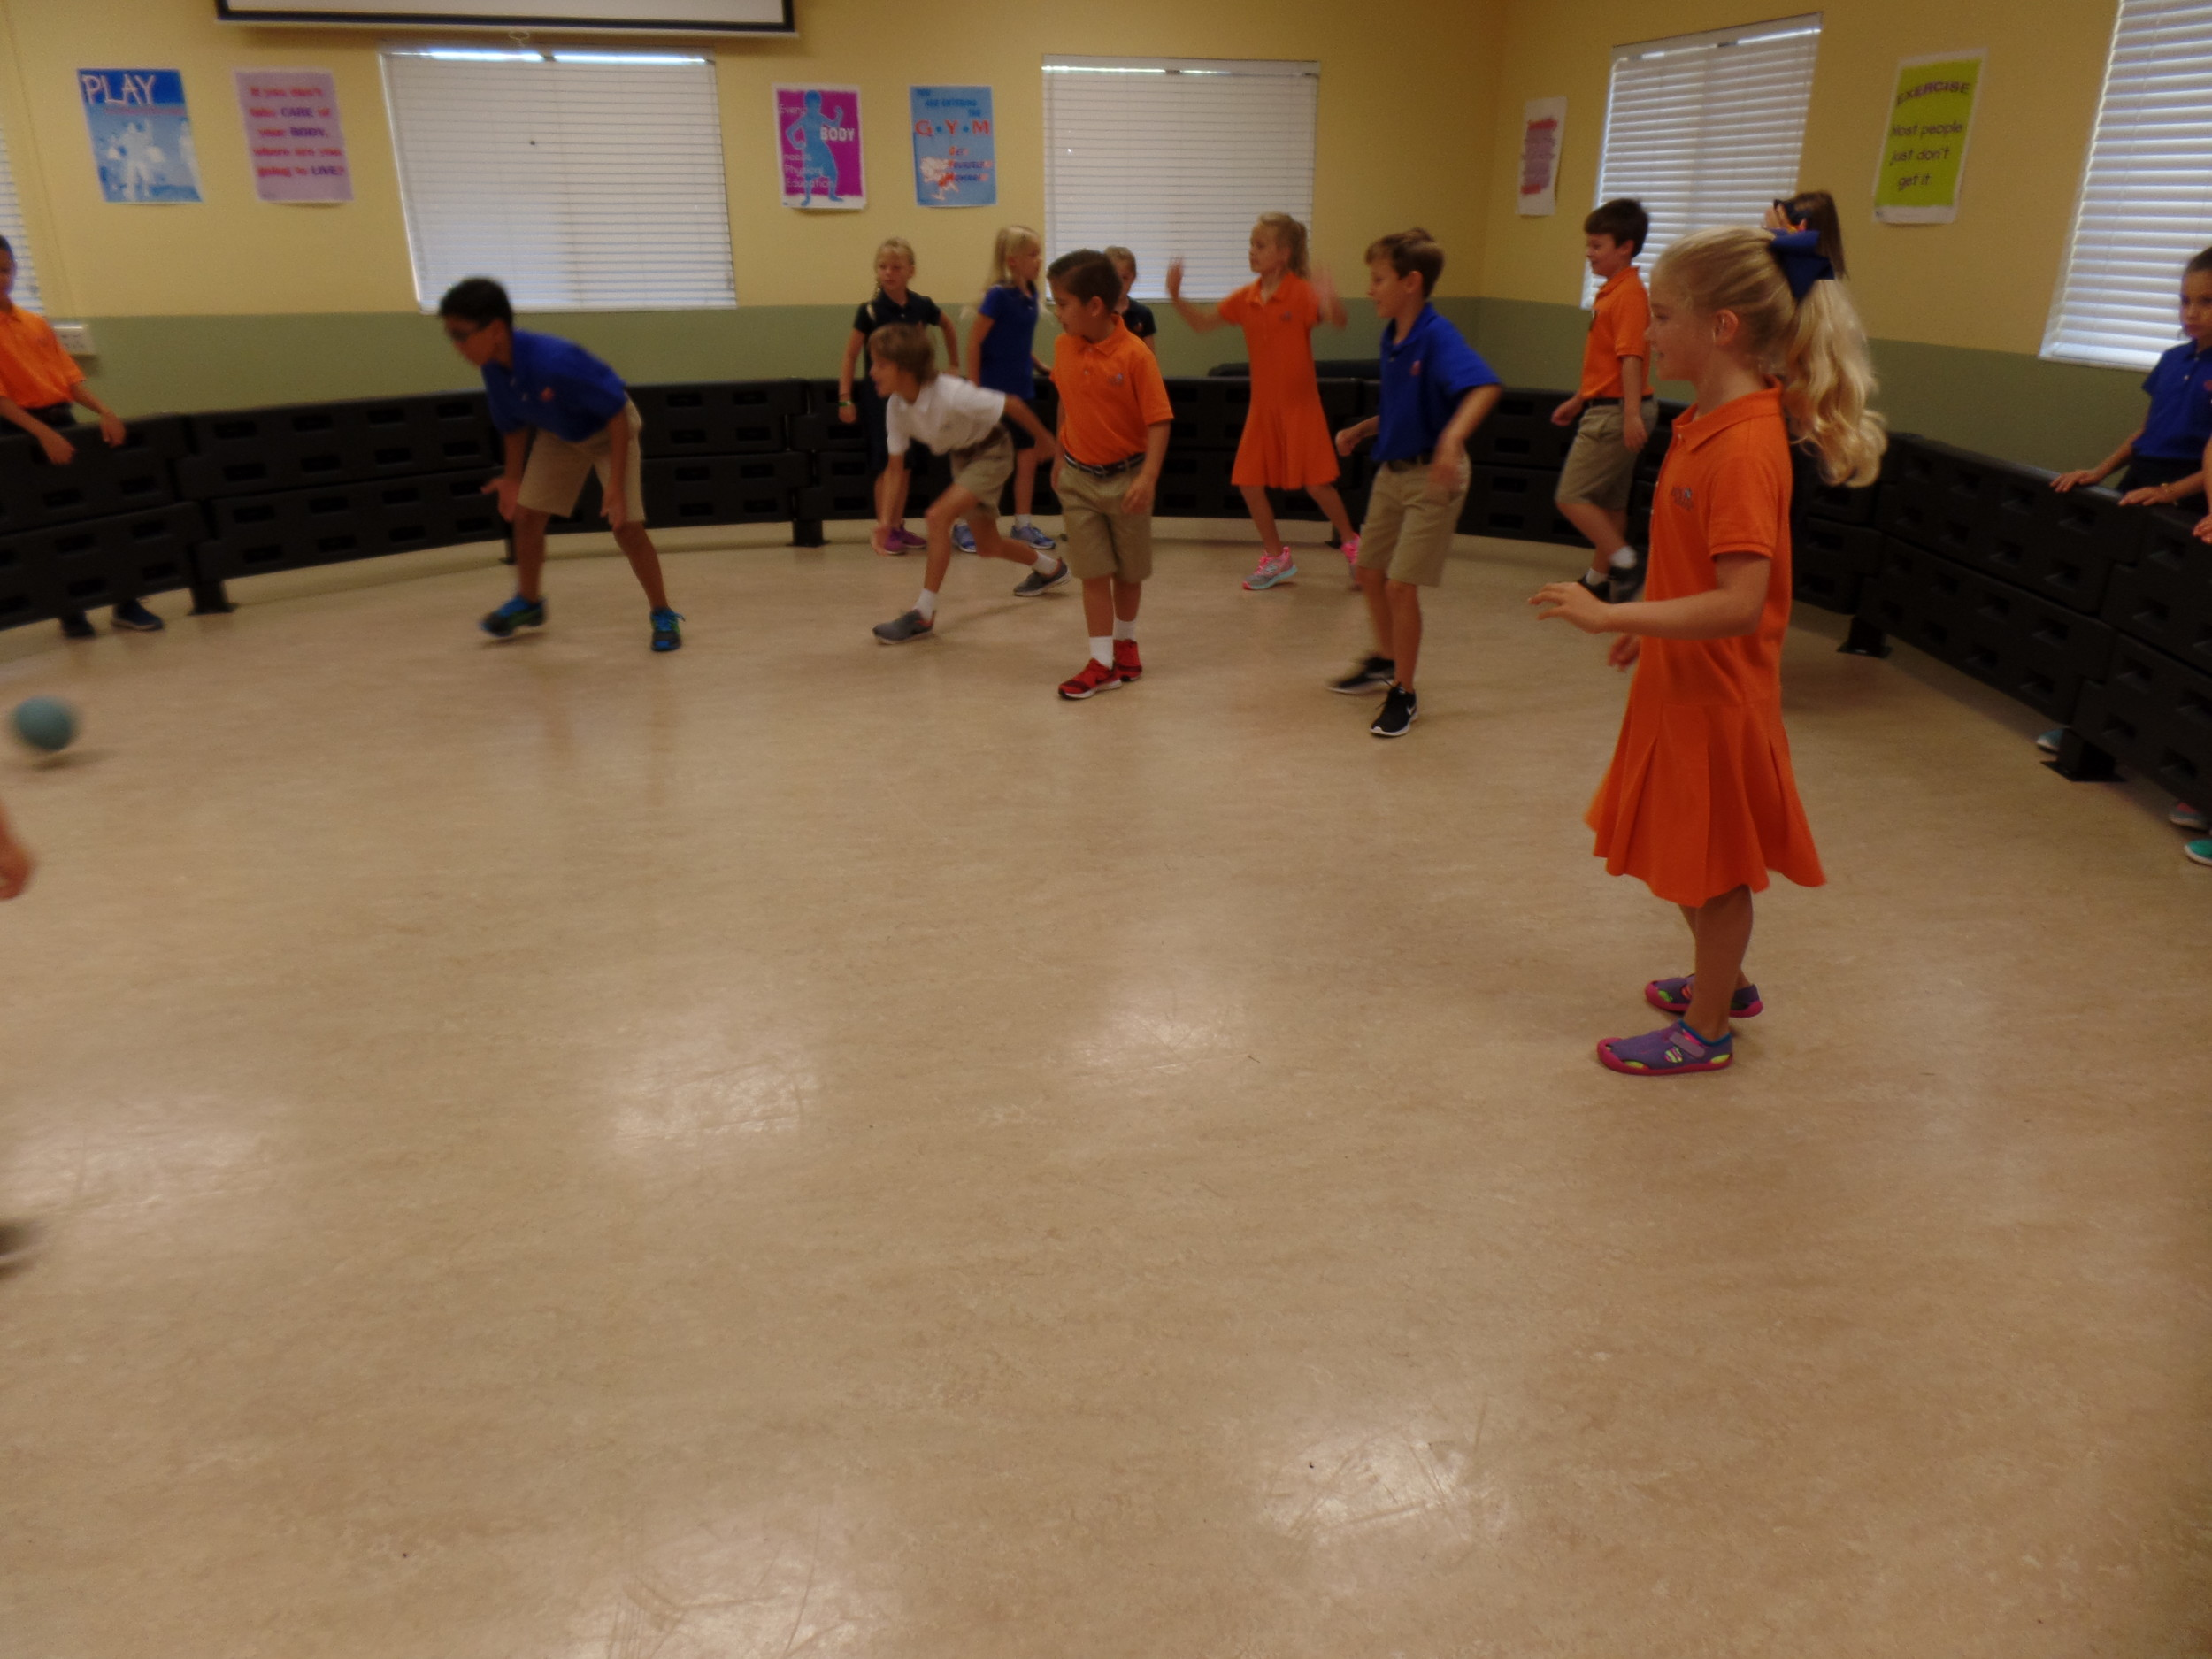 Students at the Bolles Ponte Vedra Beach Campus play a game of gaga ball in the school's multipurpose room.